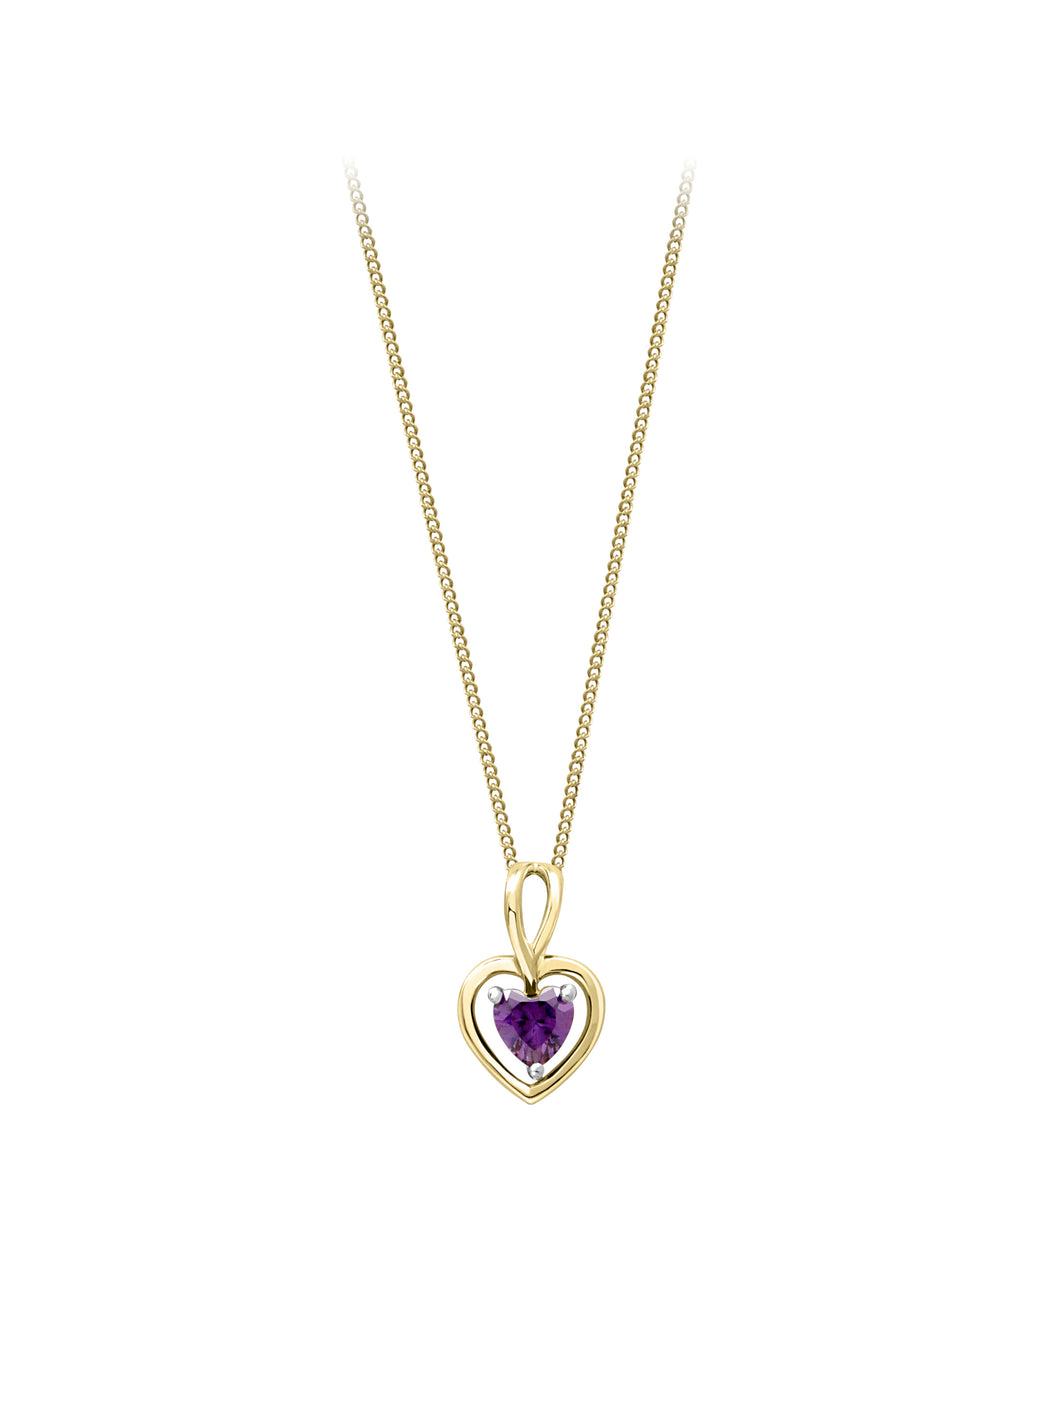 Genuine Amethyst Heart Pendant  10k Yellow Gold  Comes with 10k Gold 18in Chain